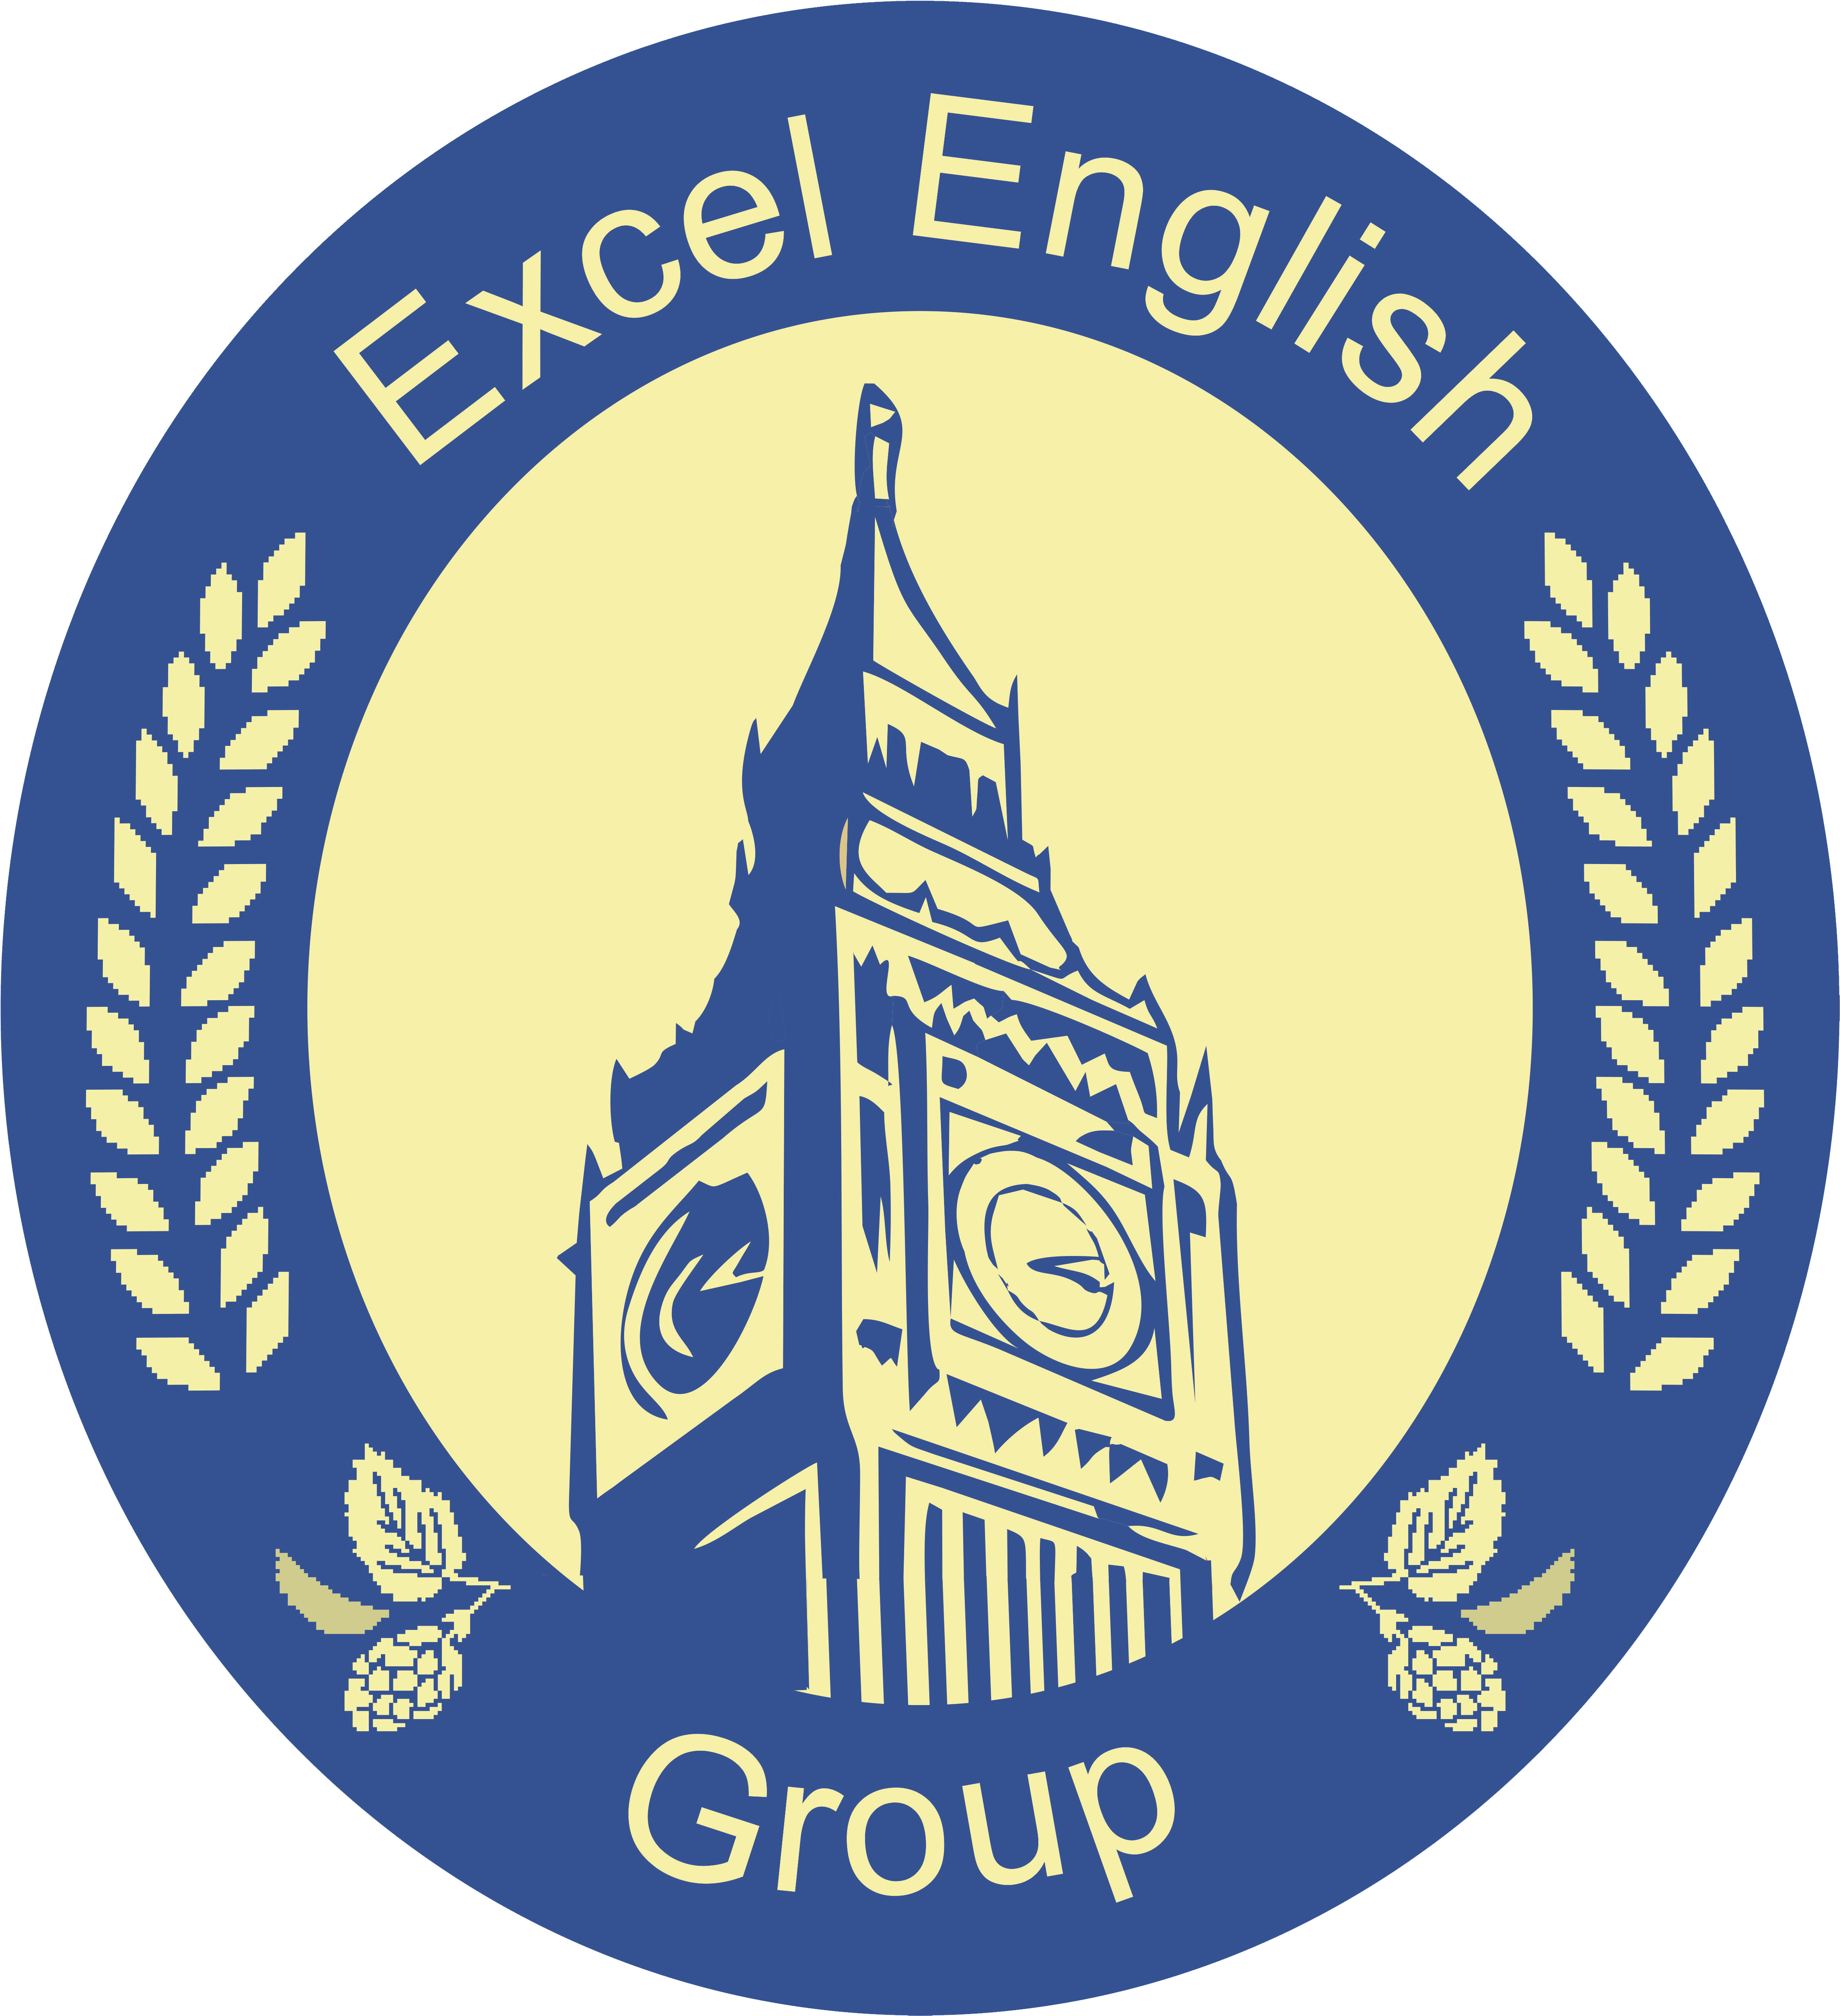 Excel English Group